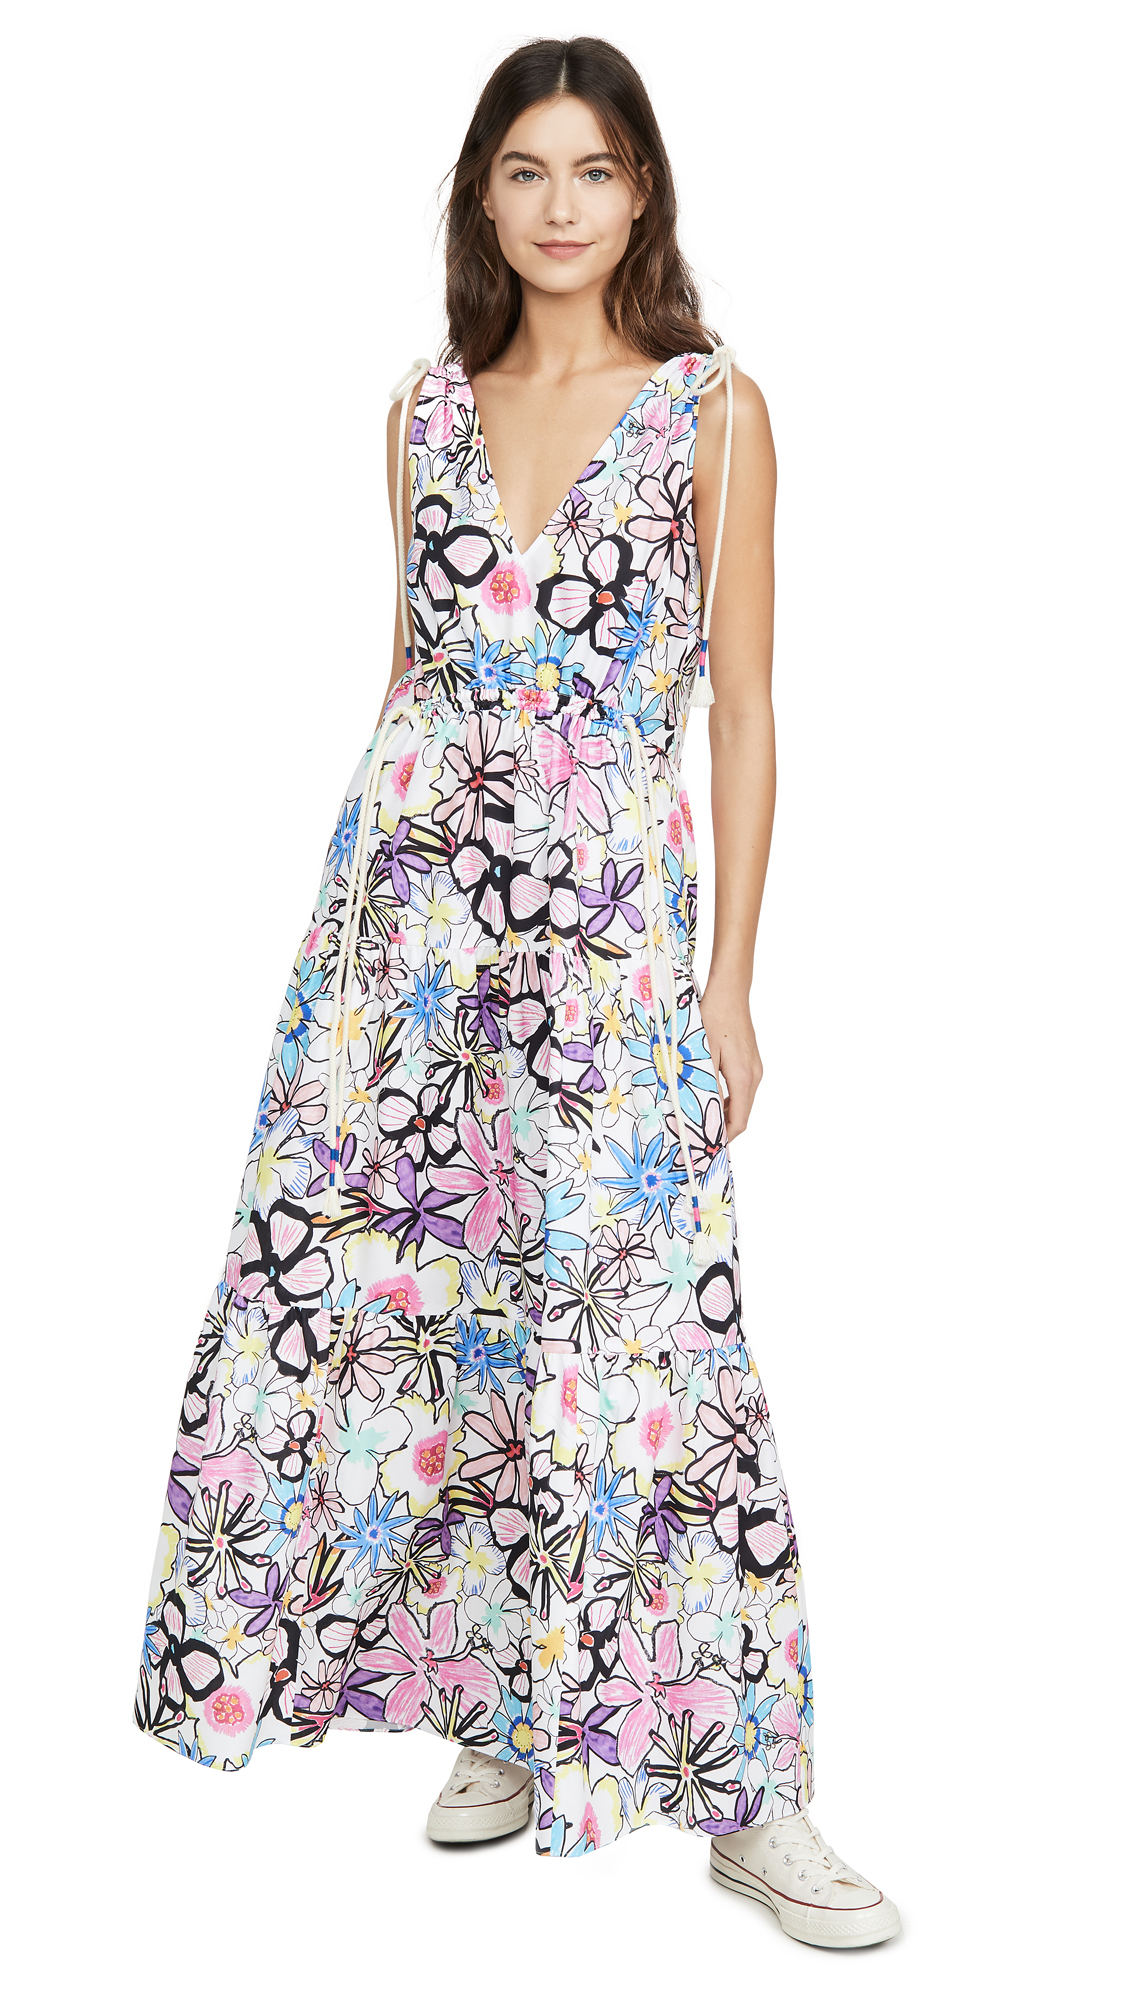 Mira Mikati Bold Lines Flower Print Tiered V Neck Dress - 50% Off Sale